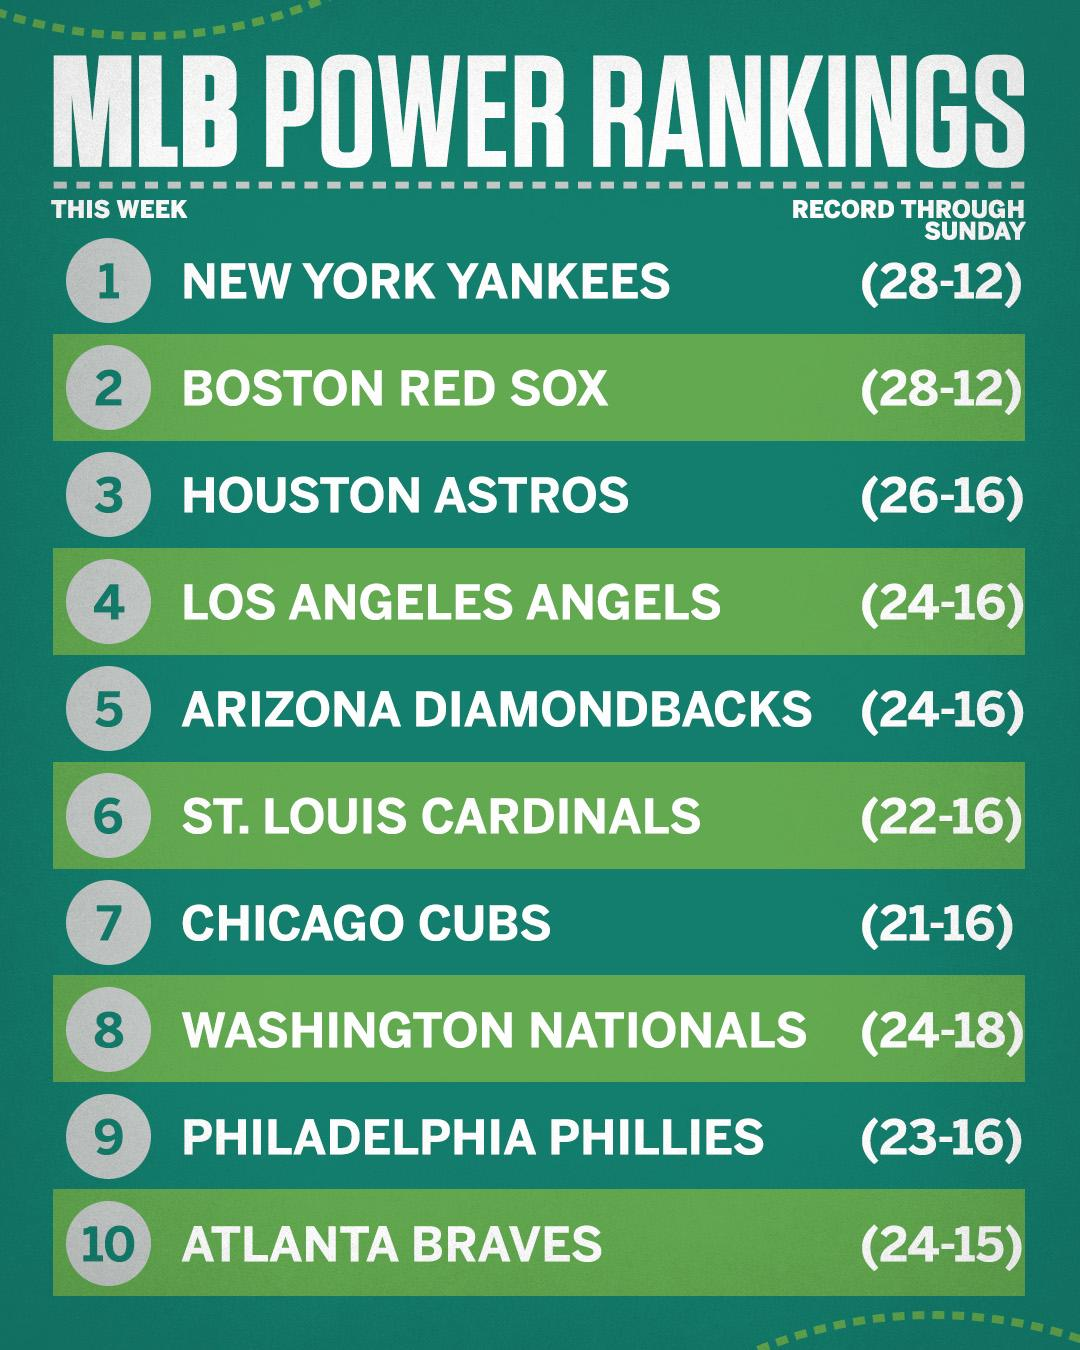 The Yankees and Red Sox are still on top.  https://t.co/SWNDgruzZo https://t.co/VTPCwmfRMD